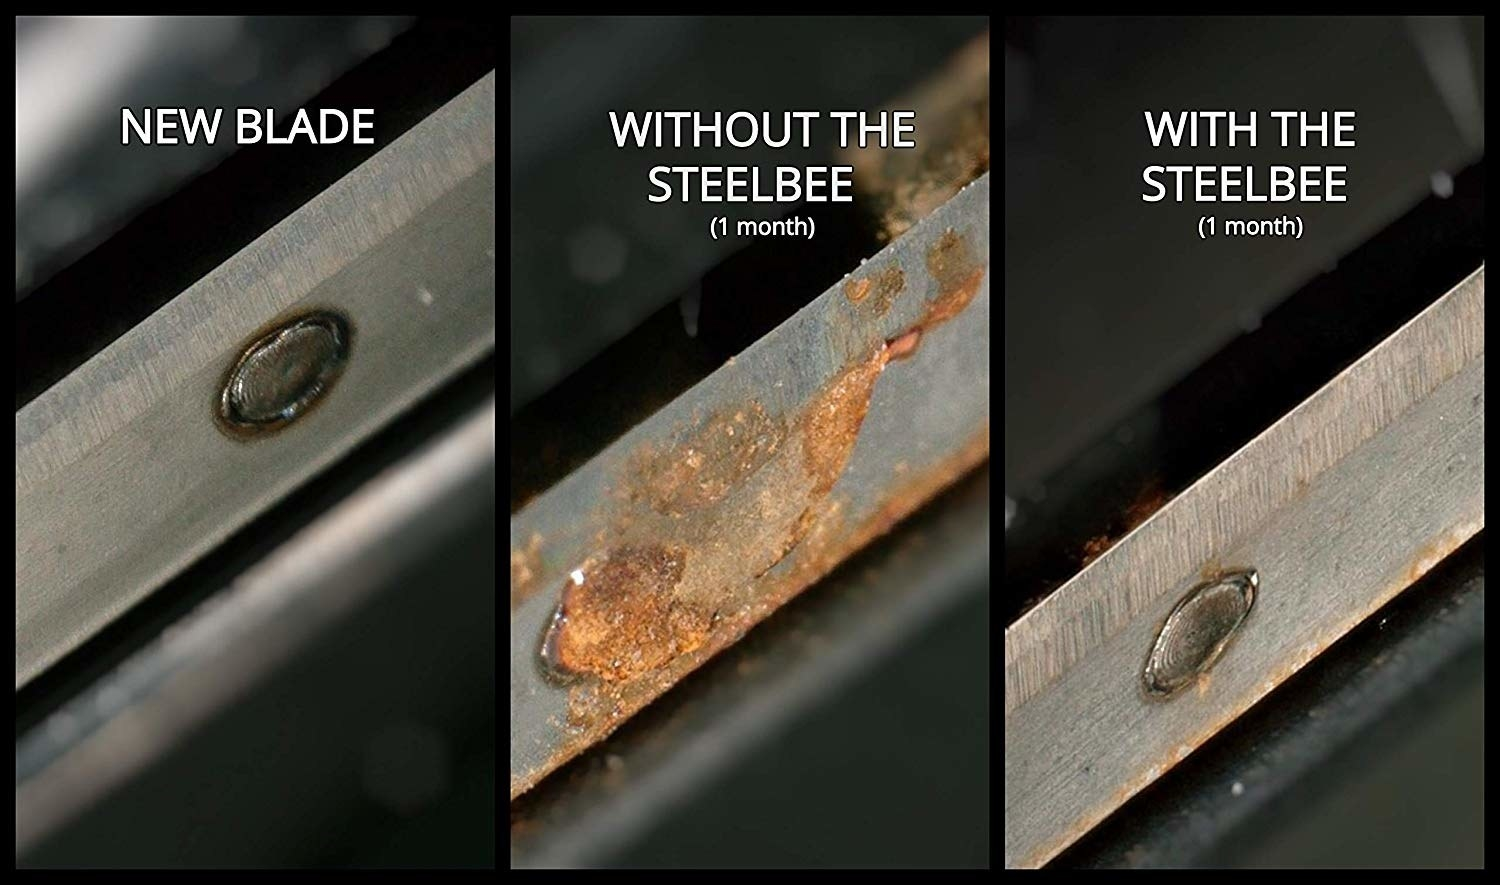 A three-image collage: new blade (clean), blade without the Steelbee (after one month with rust on it), blade with the steelbee (1 month, no rust)